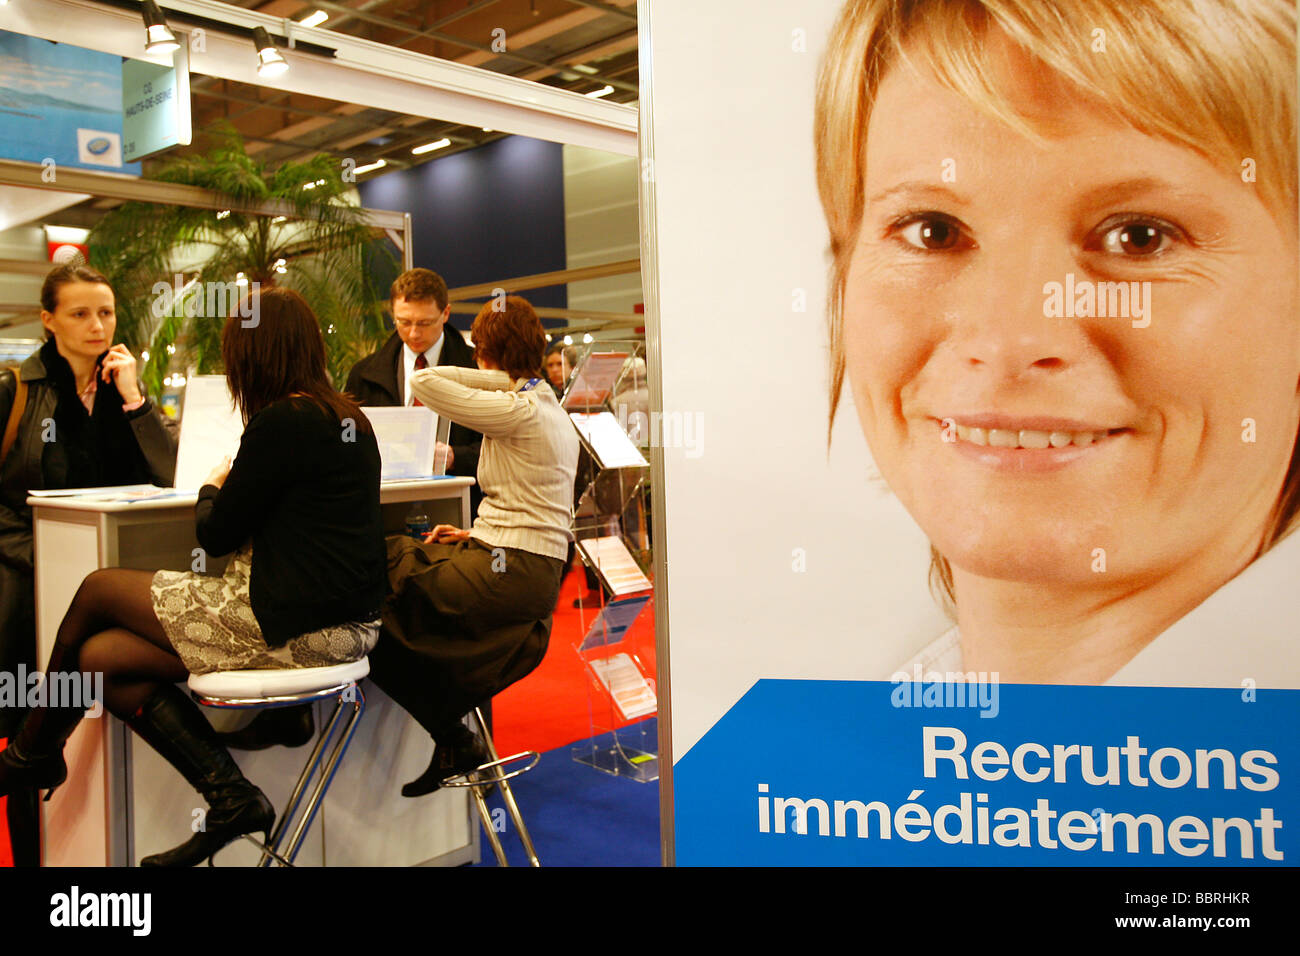 INTERVIEWS, APPLICATIONS, RESUMES, PUBLIC EMPLOYMENT FAIR, NATIONAL FAIR FOR RECRUITMENT INTO PROFESSIONS AND CAREERS - Stock Image